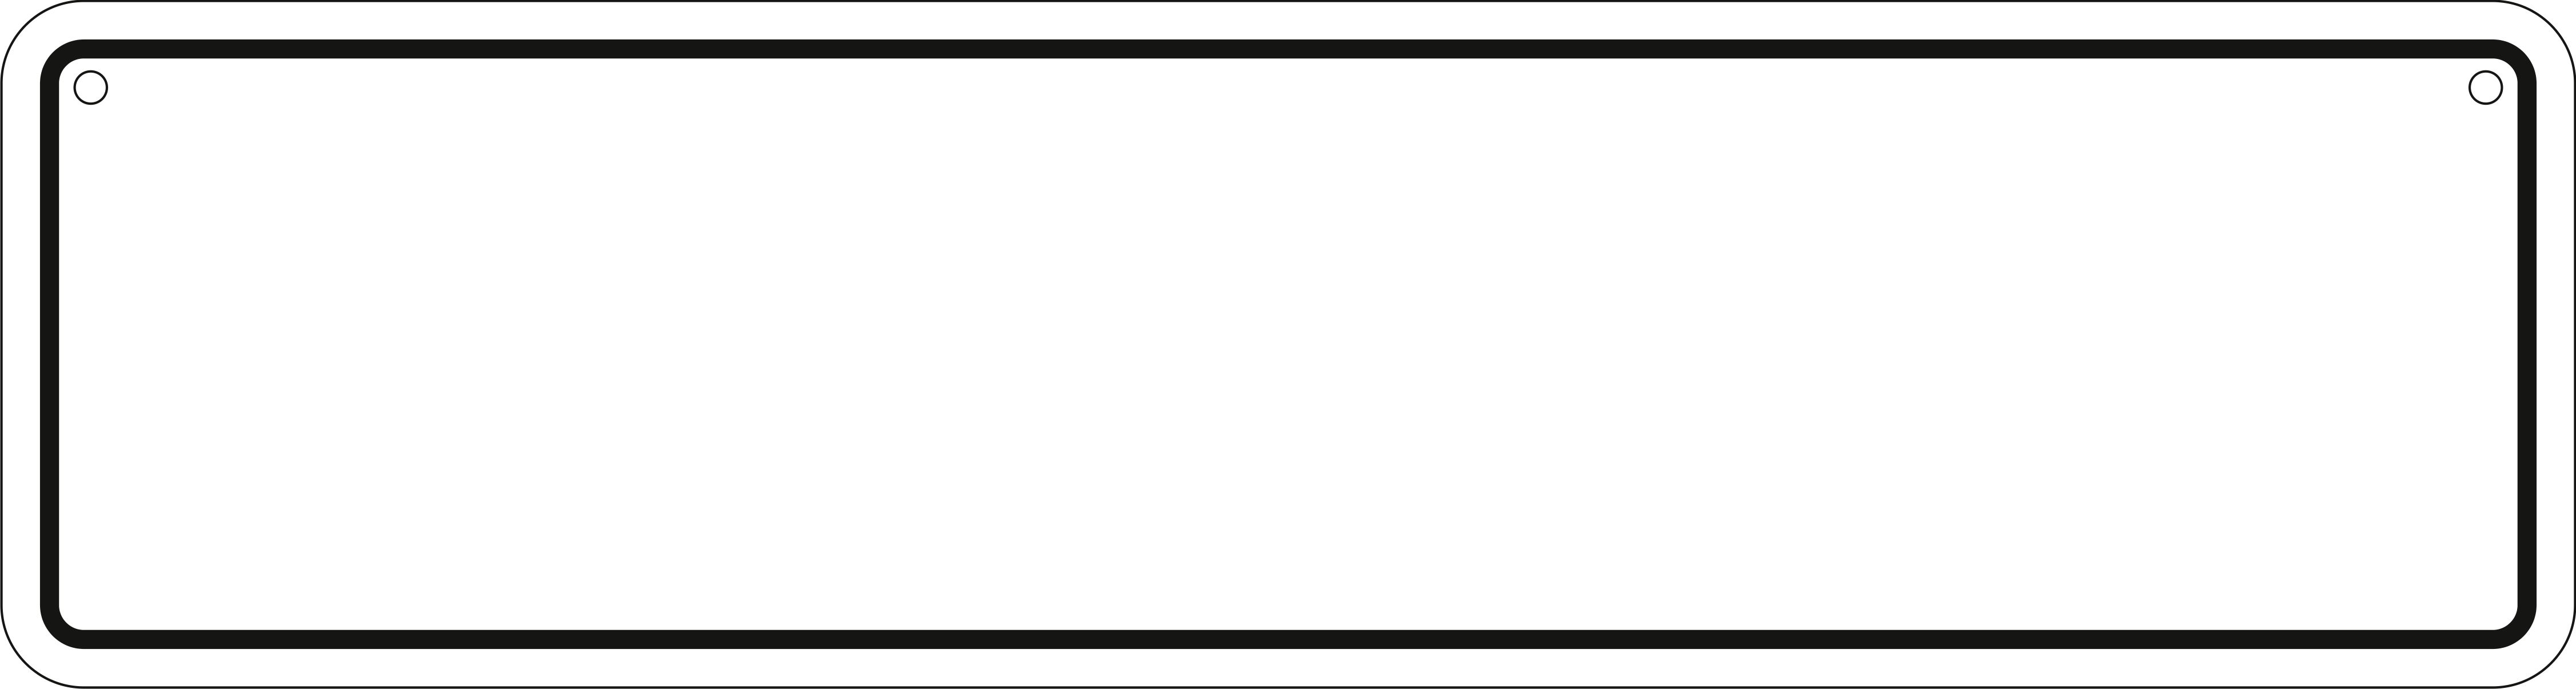 Blank road signs clipart black and white